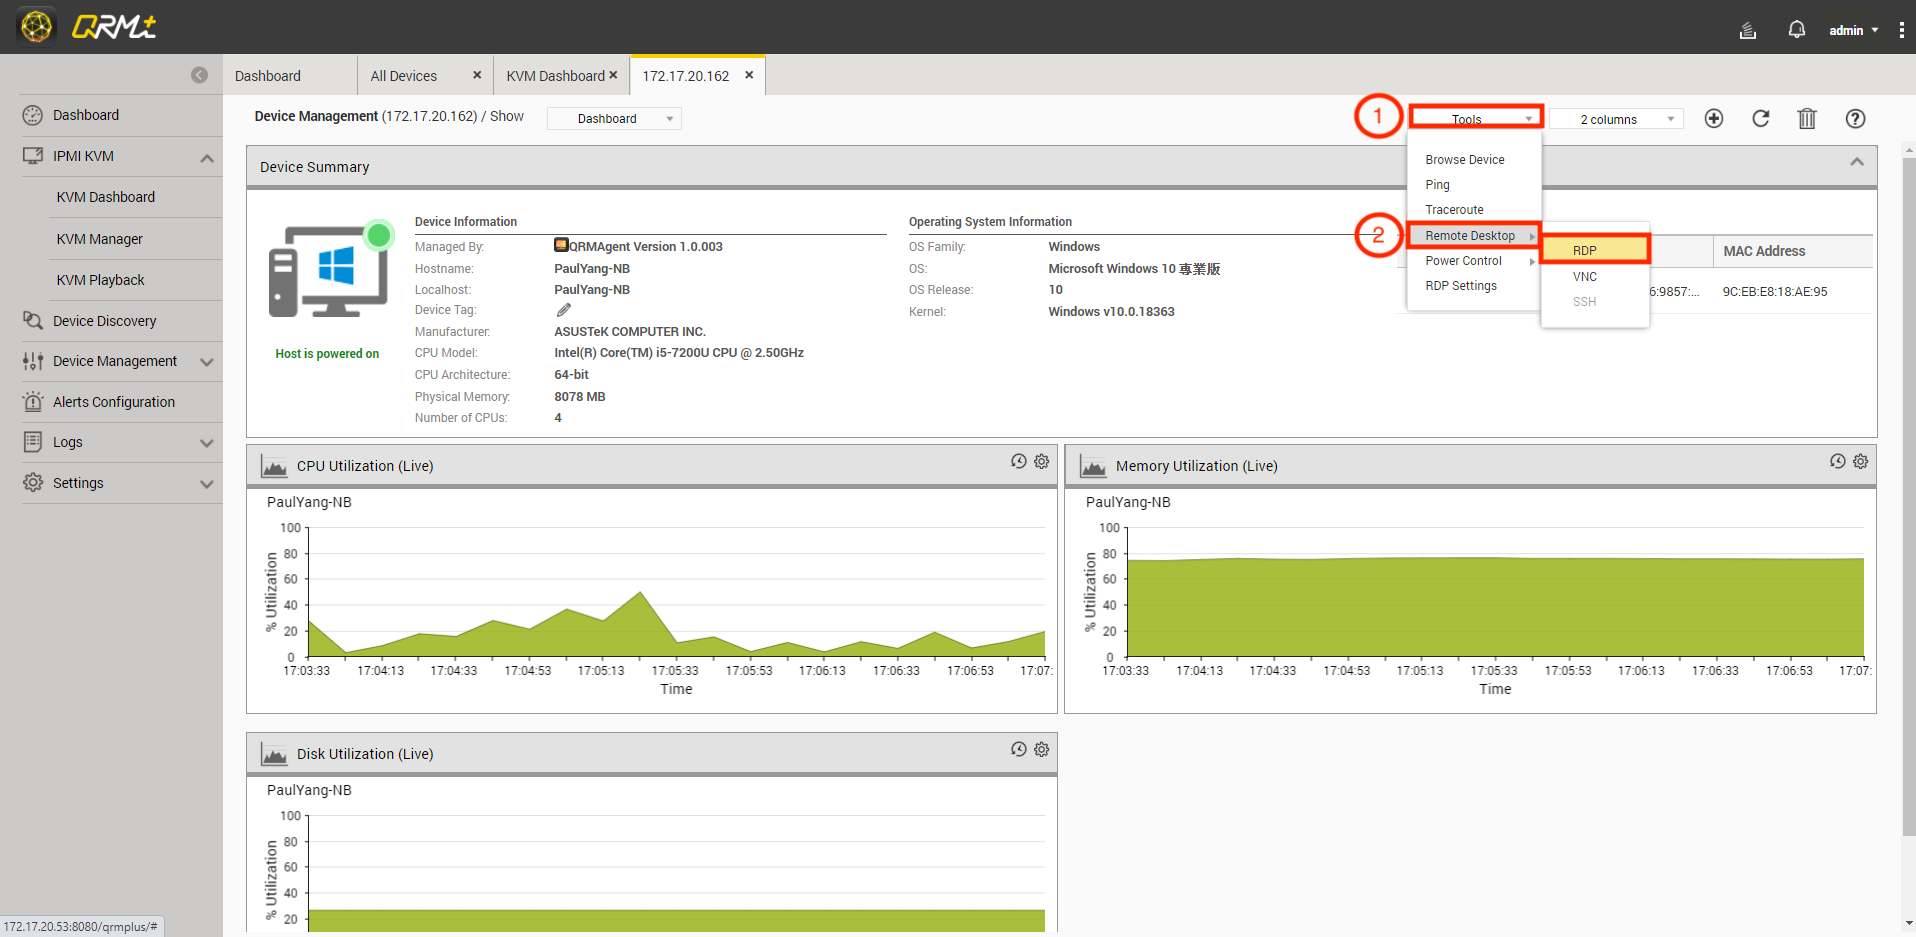 How to access a Remote Desktop using RDP in QRM+ | QNAP